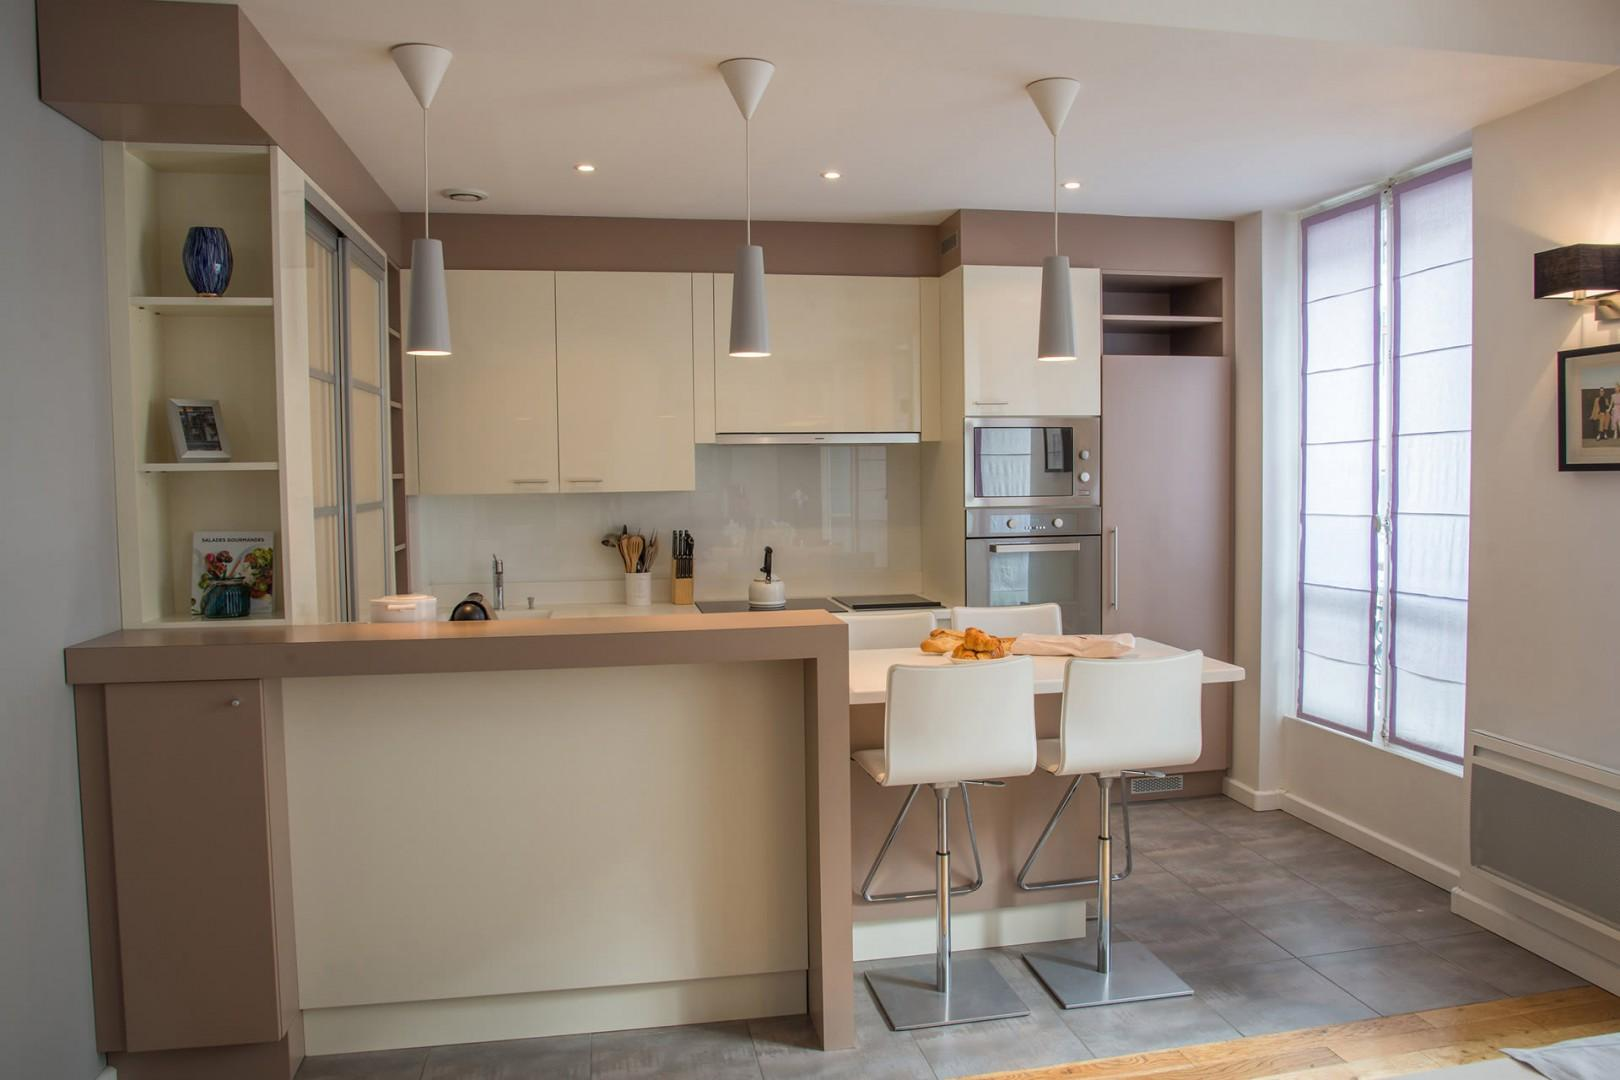 The streamlined kitchen gives the apartment a modern touch.